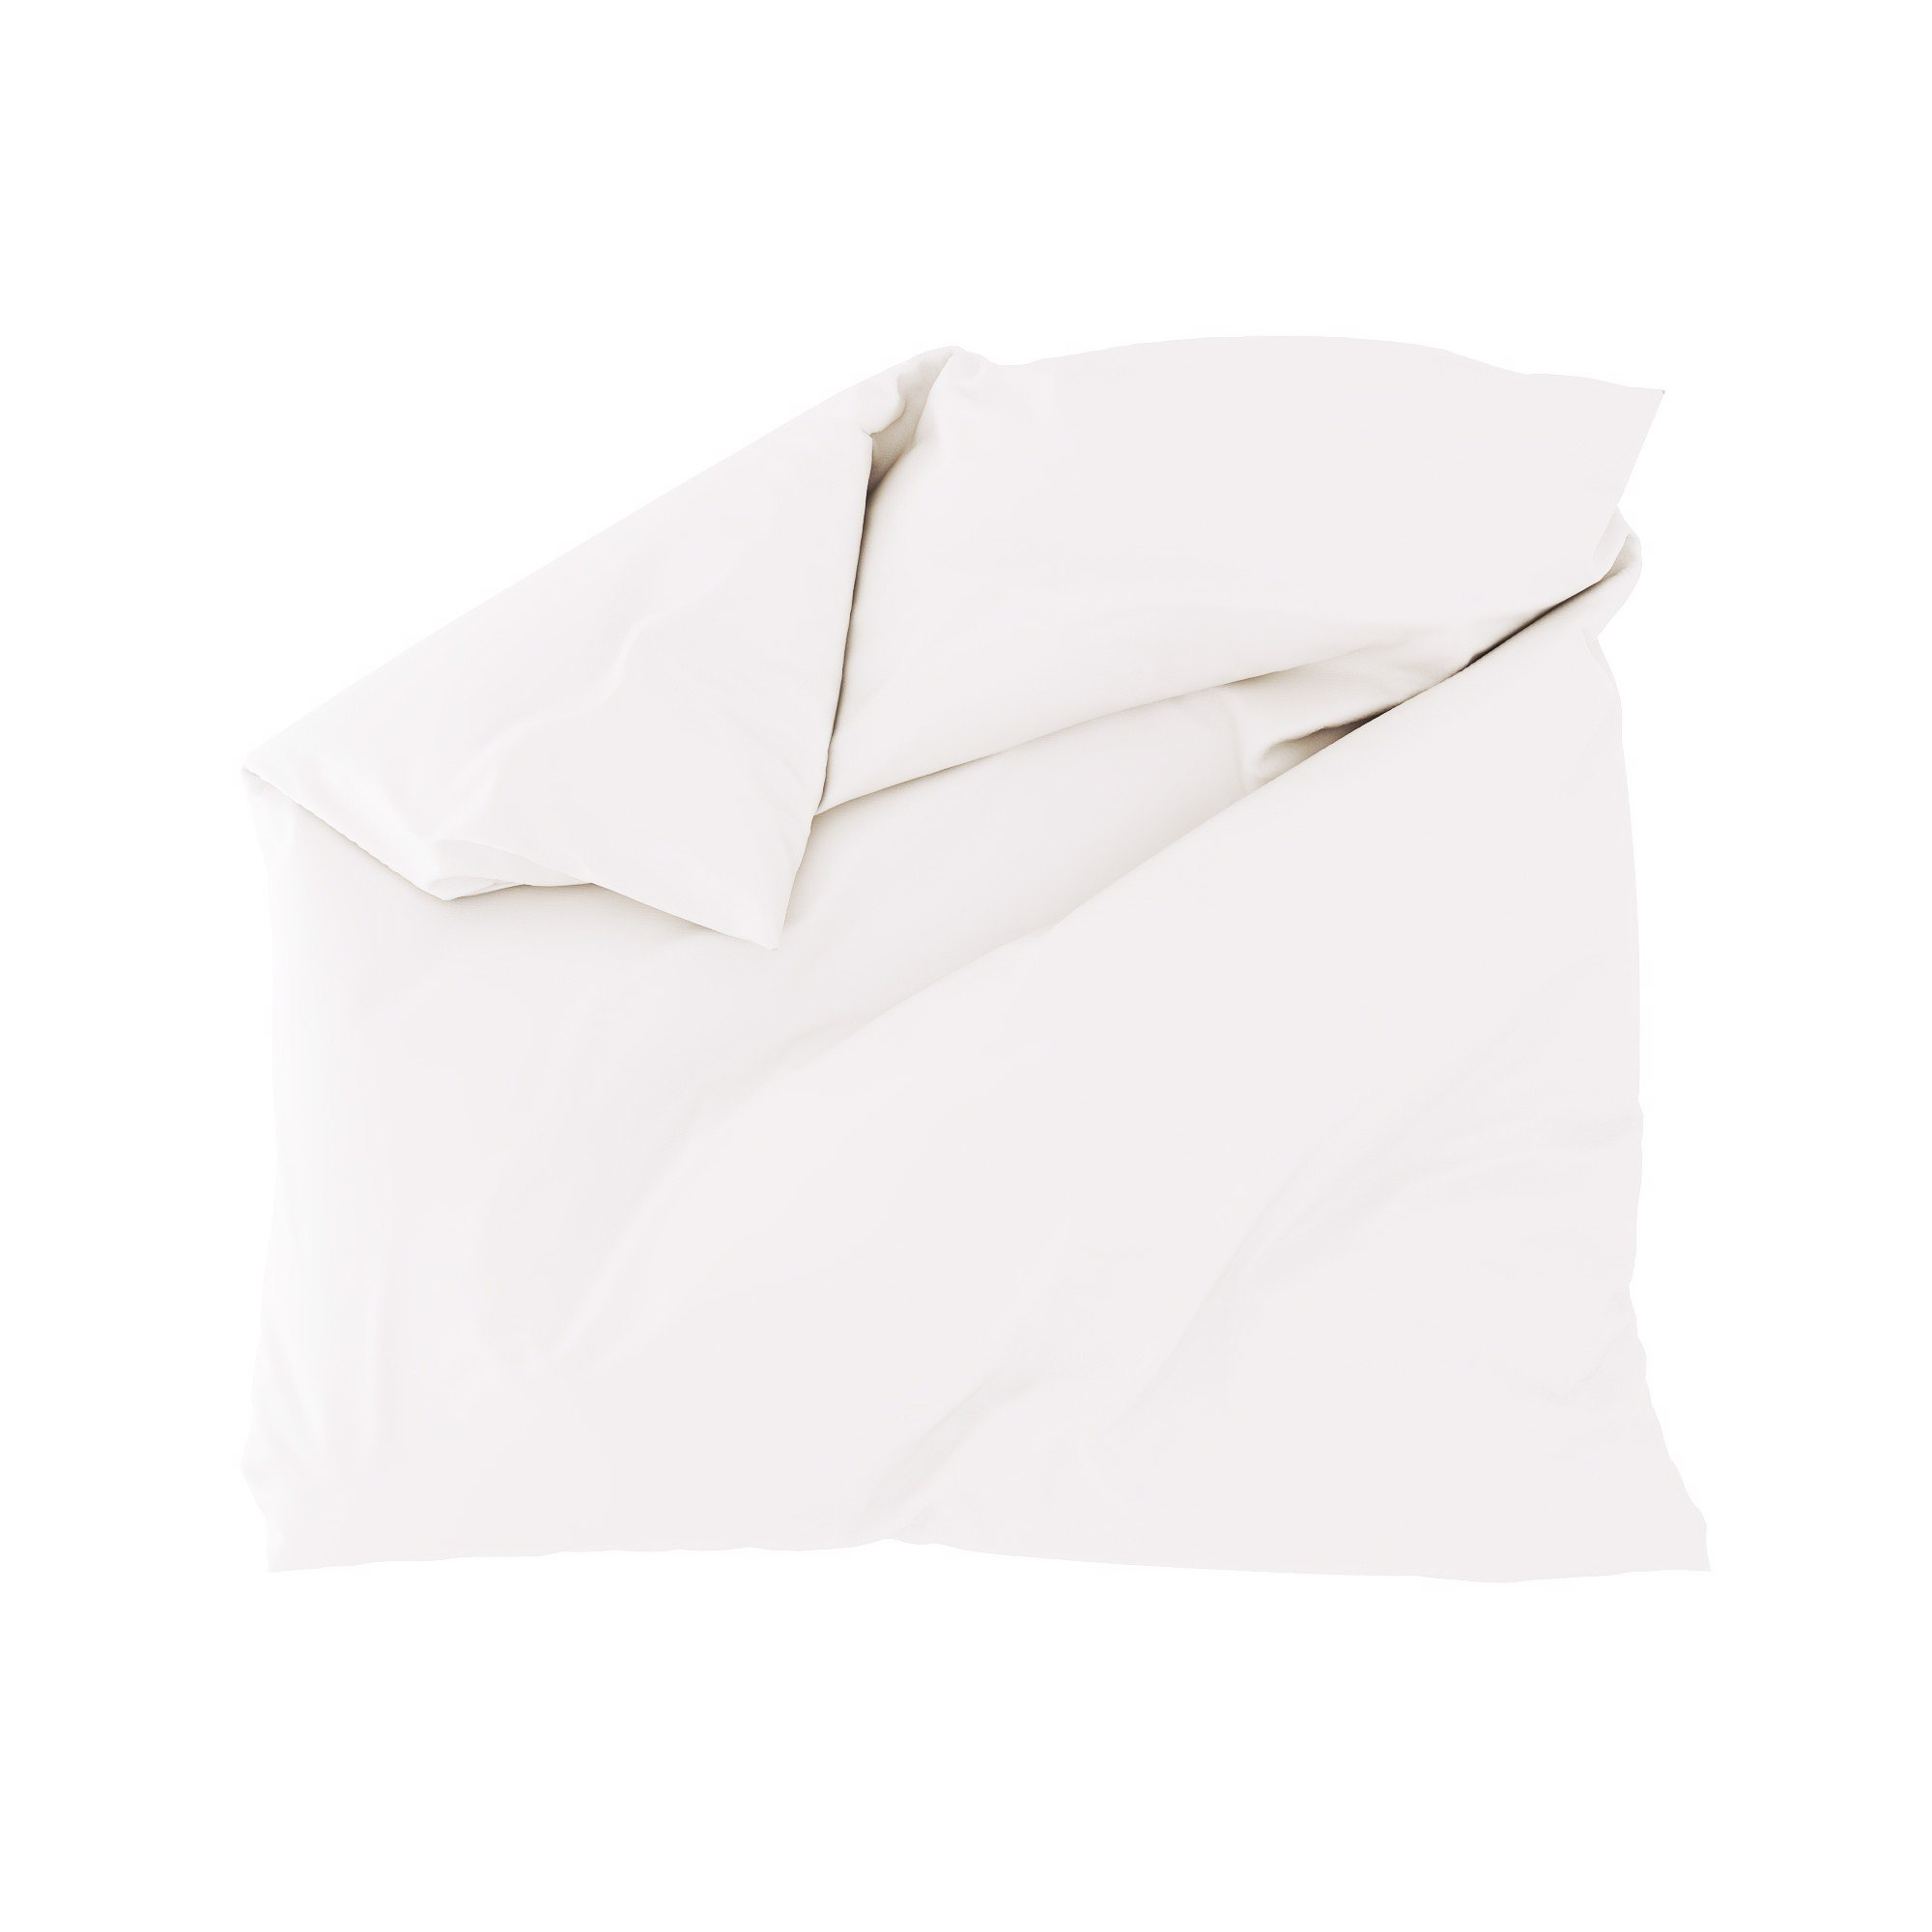 Tencel duvet cover 01 White cream